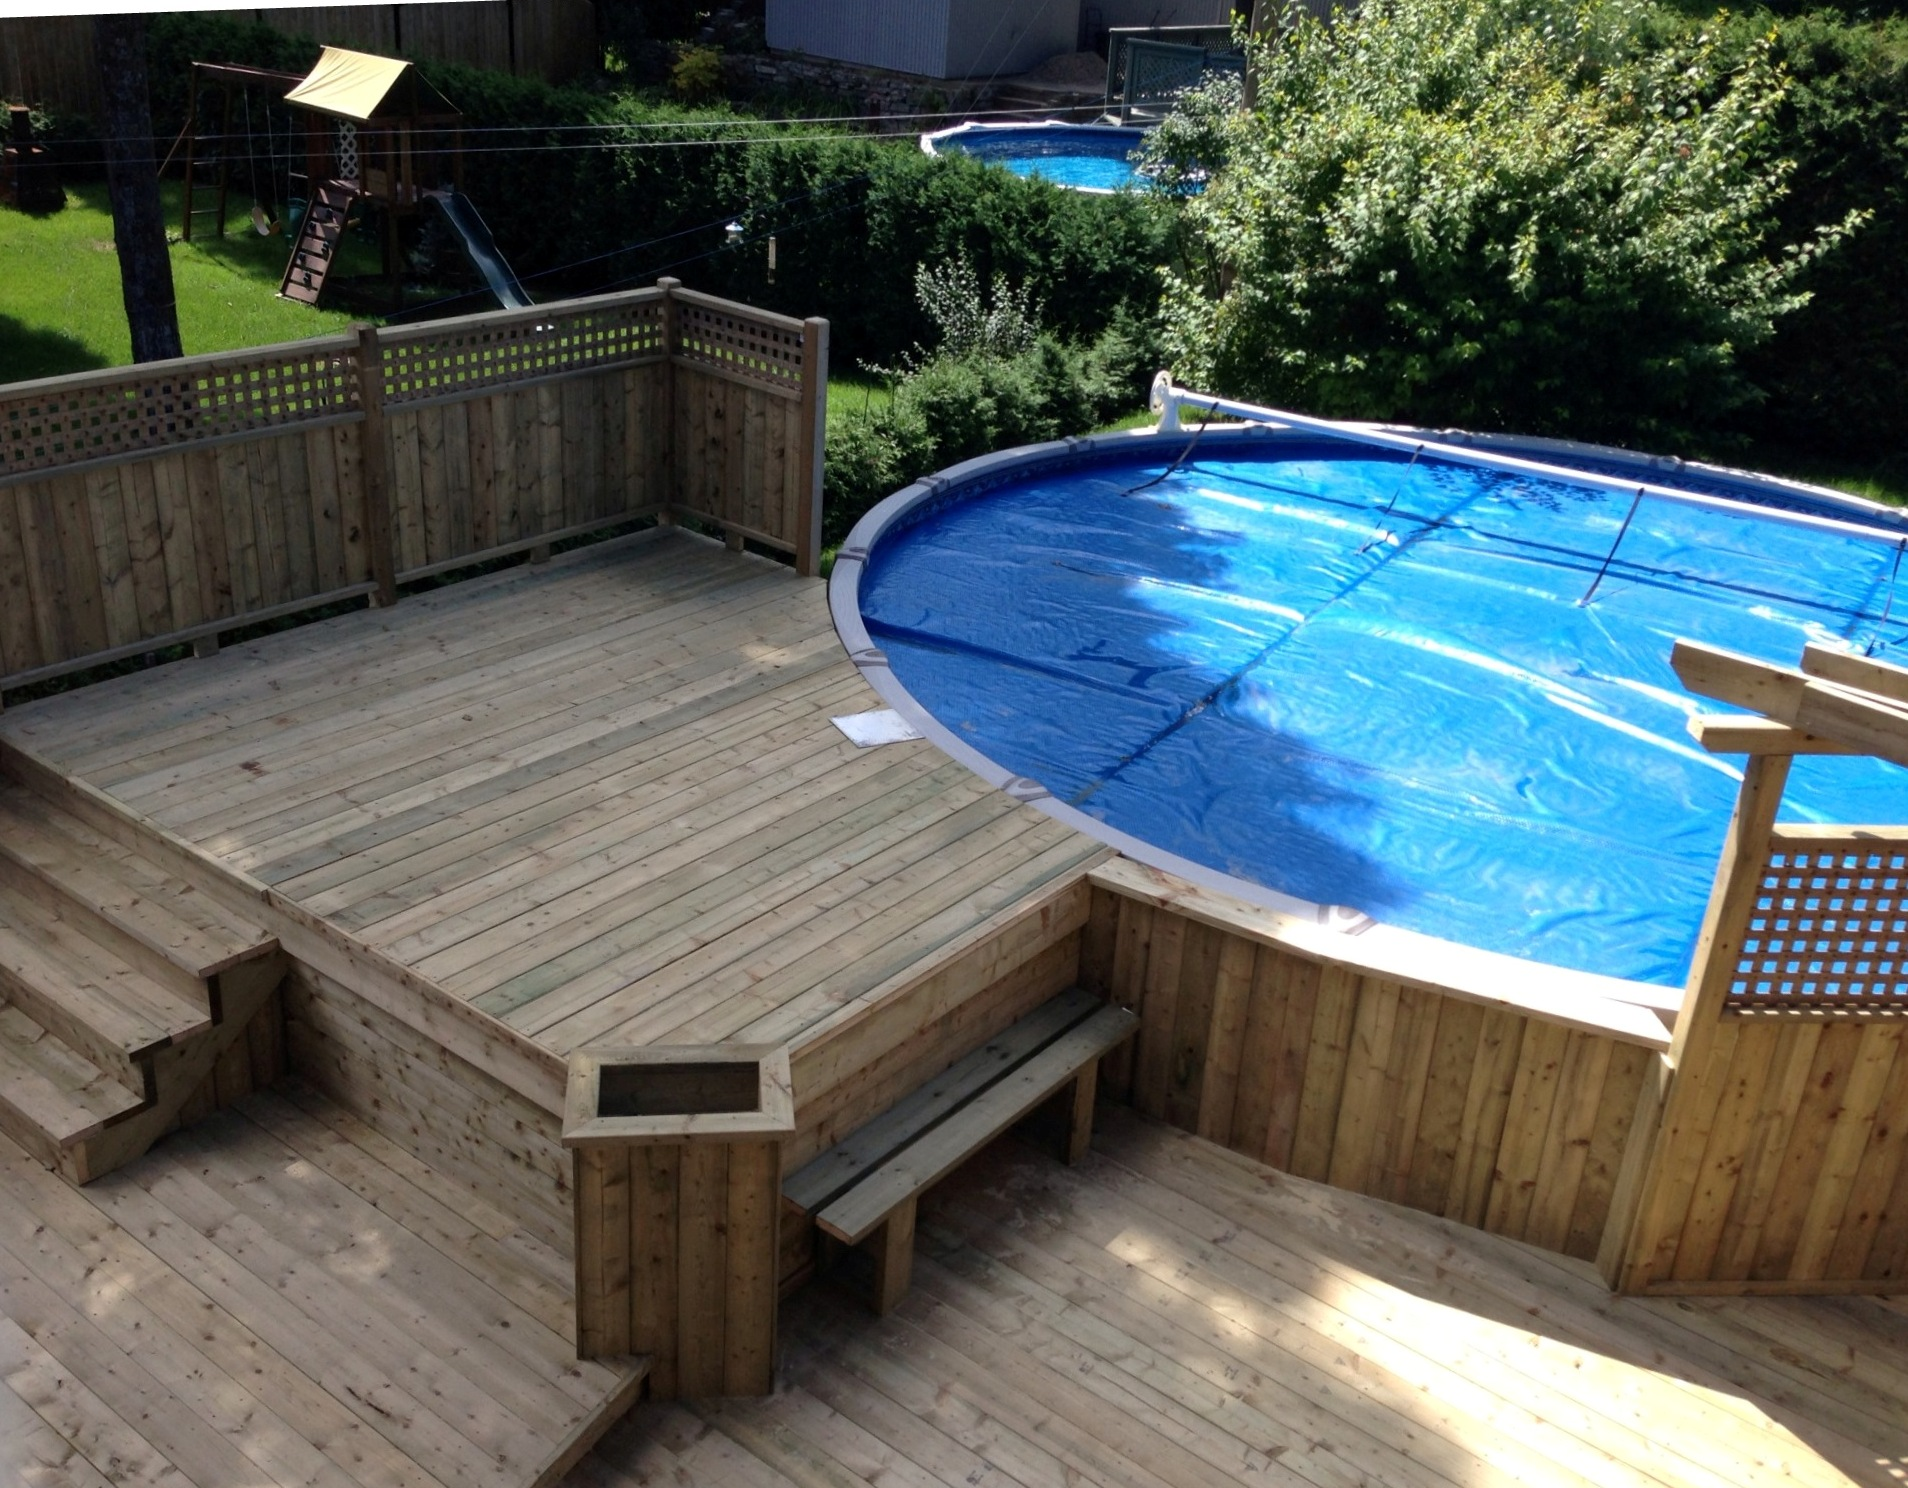 Patios decks piscine patio bois trait for Plan pour patio de piscine